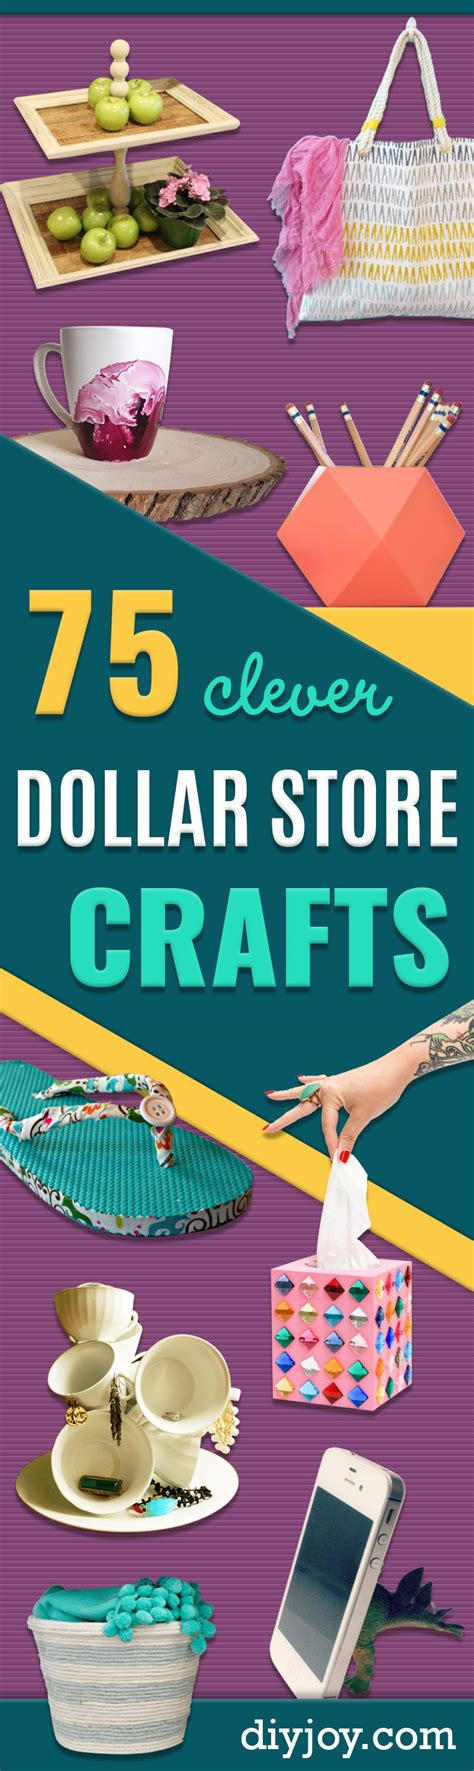 dollar store crafts for the 75 absolute best dollar store crafts